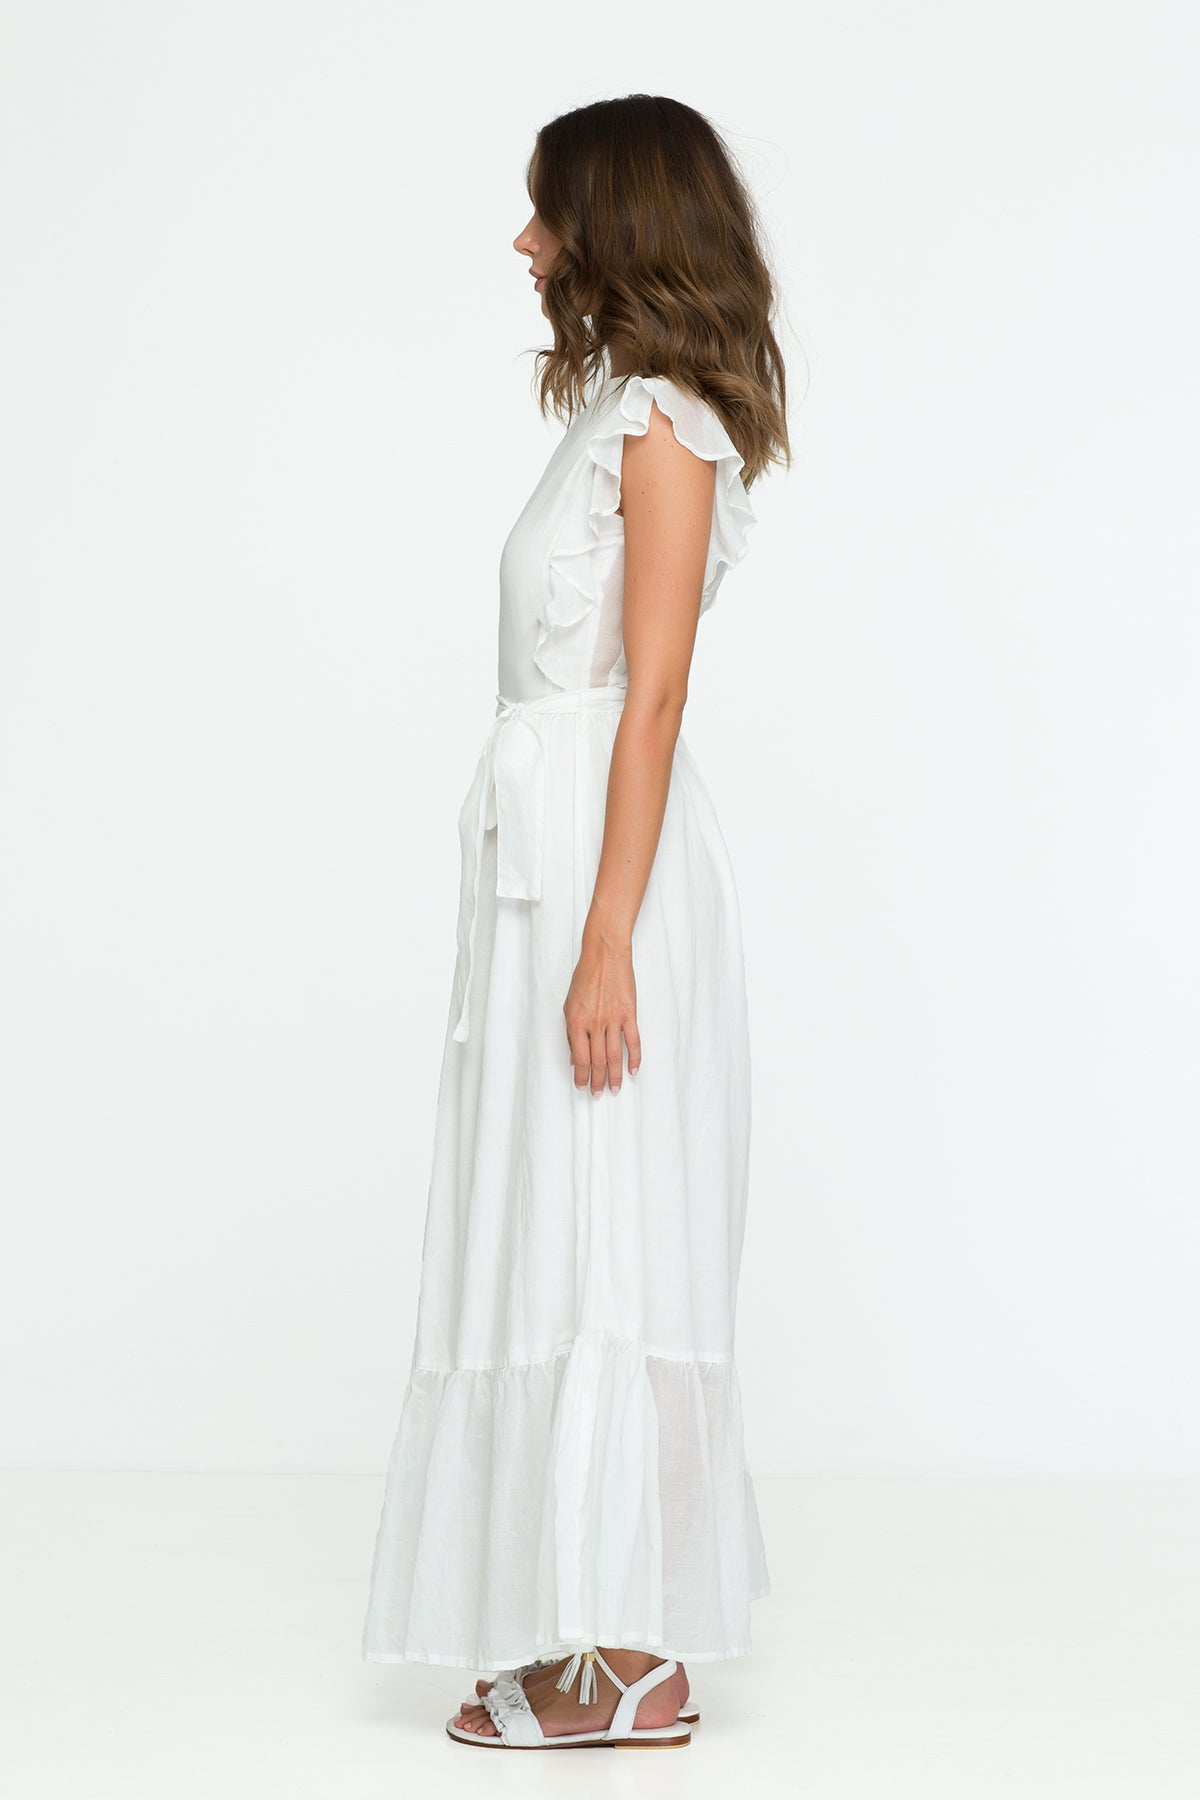 Cotton Dress Pastel White Ruffle Maxi